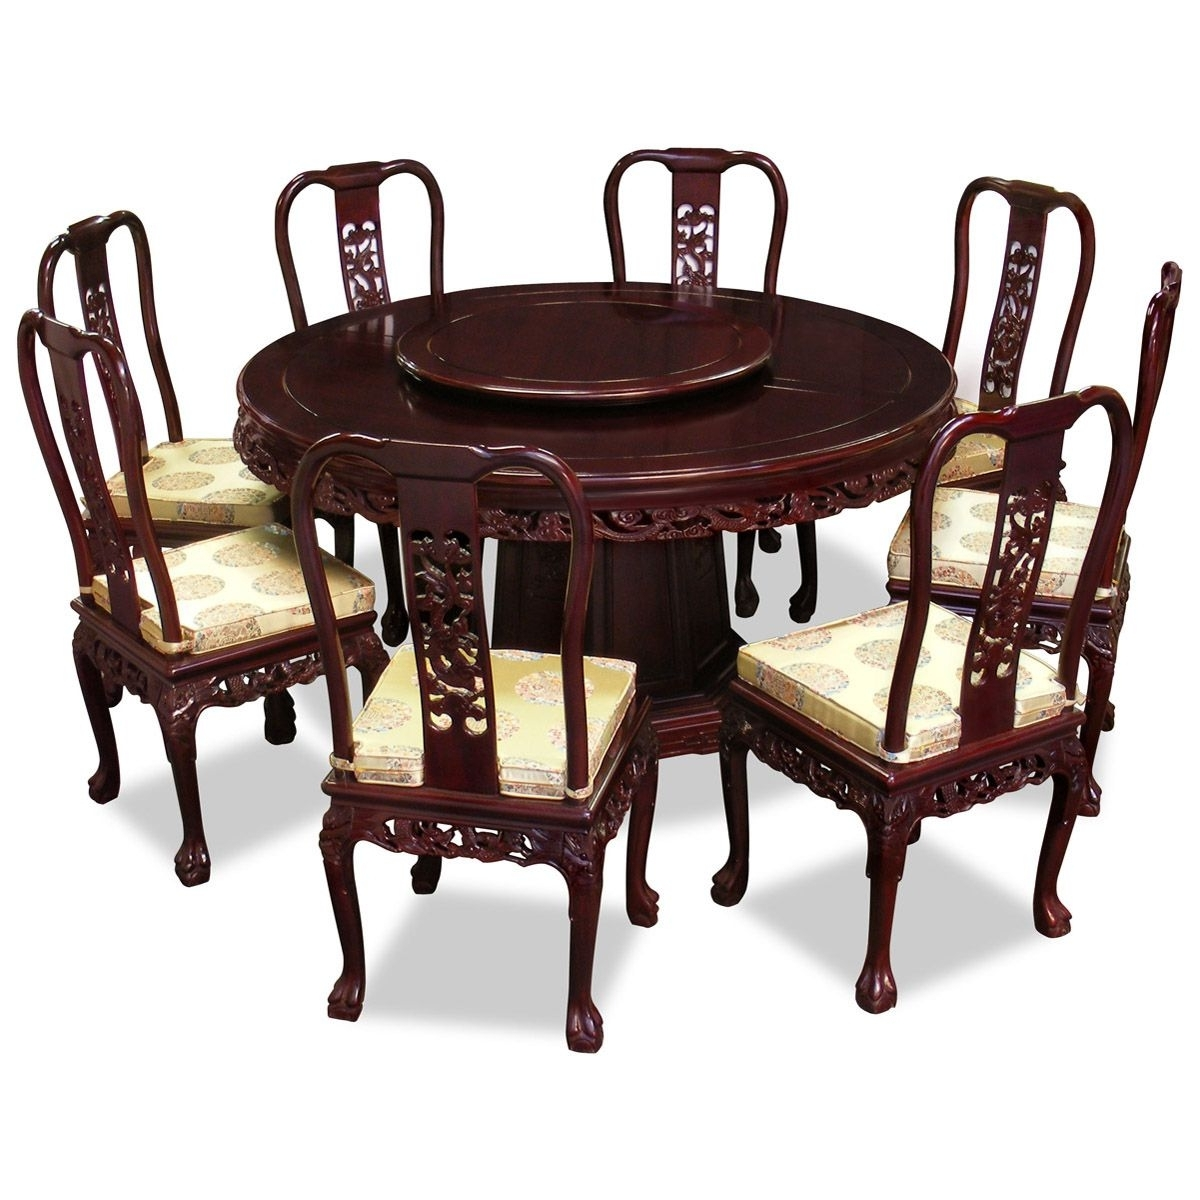 Dining Tables With 8 Chairs Inside Favorite 60In Rosewood Imperial Dragon Design Round Dining Table With  (View 22 of 25)